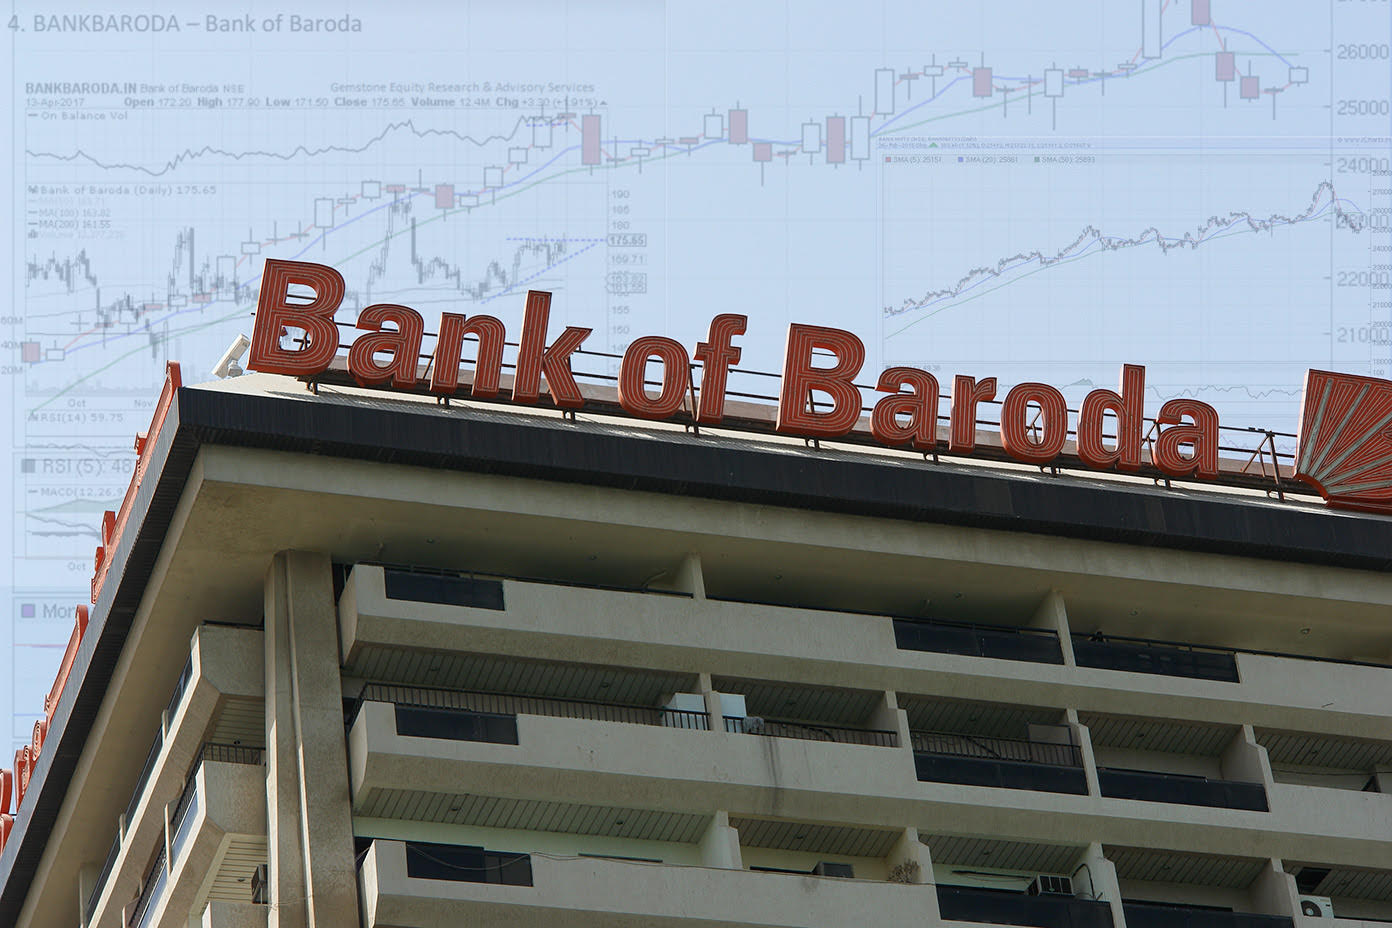 OCCRP presents data from its investigation into the role of the Bank of Baroda in South Africa's Gupta scandal, detailing transfers involving companies owned or controlled by the brothers. Photo: OCCRP. Some rights reserved.]]